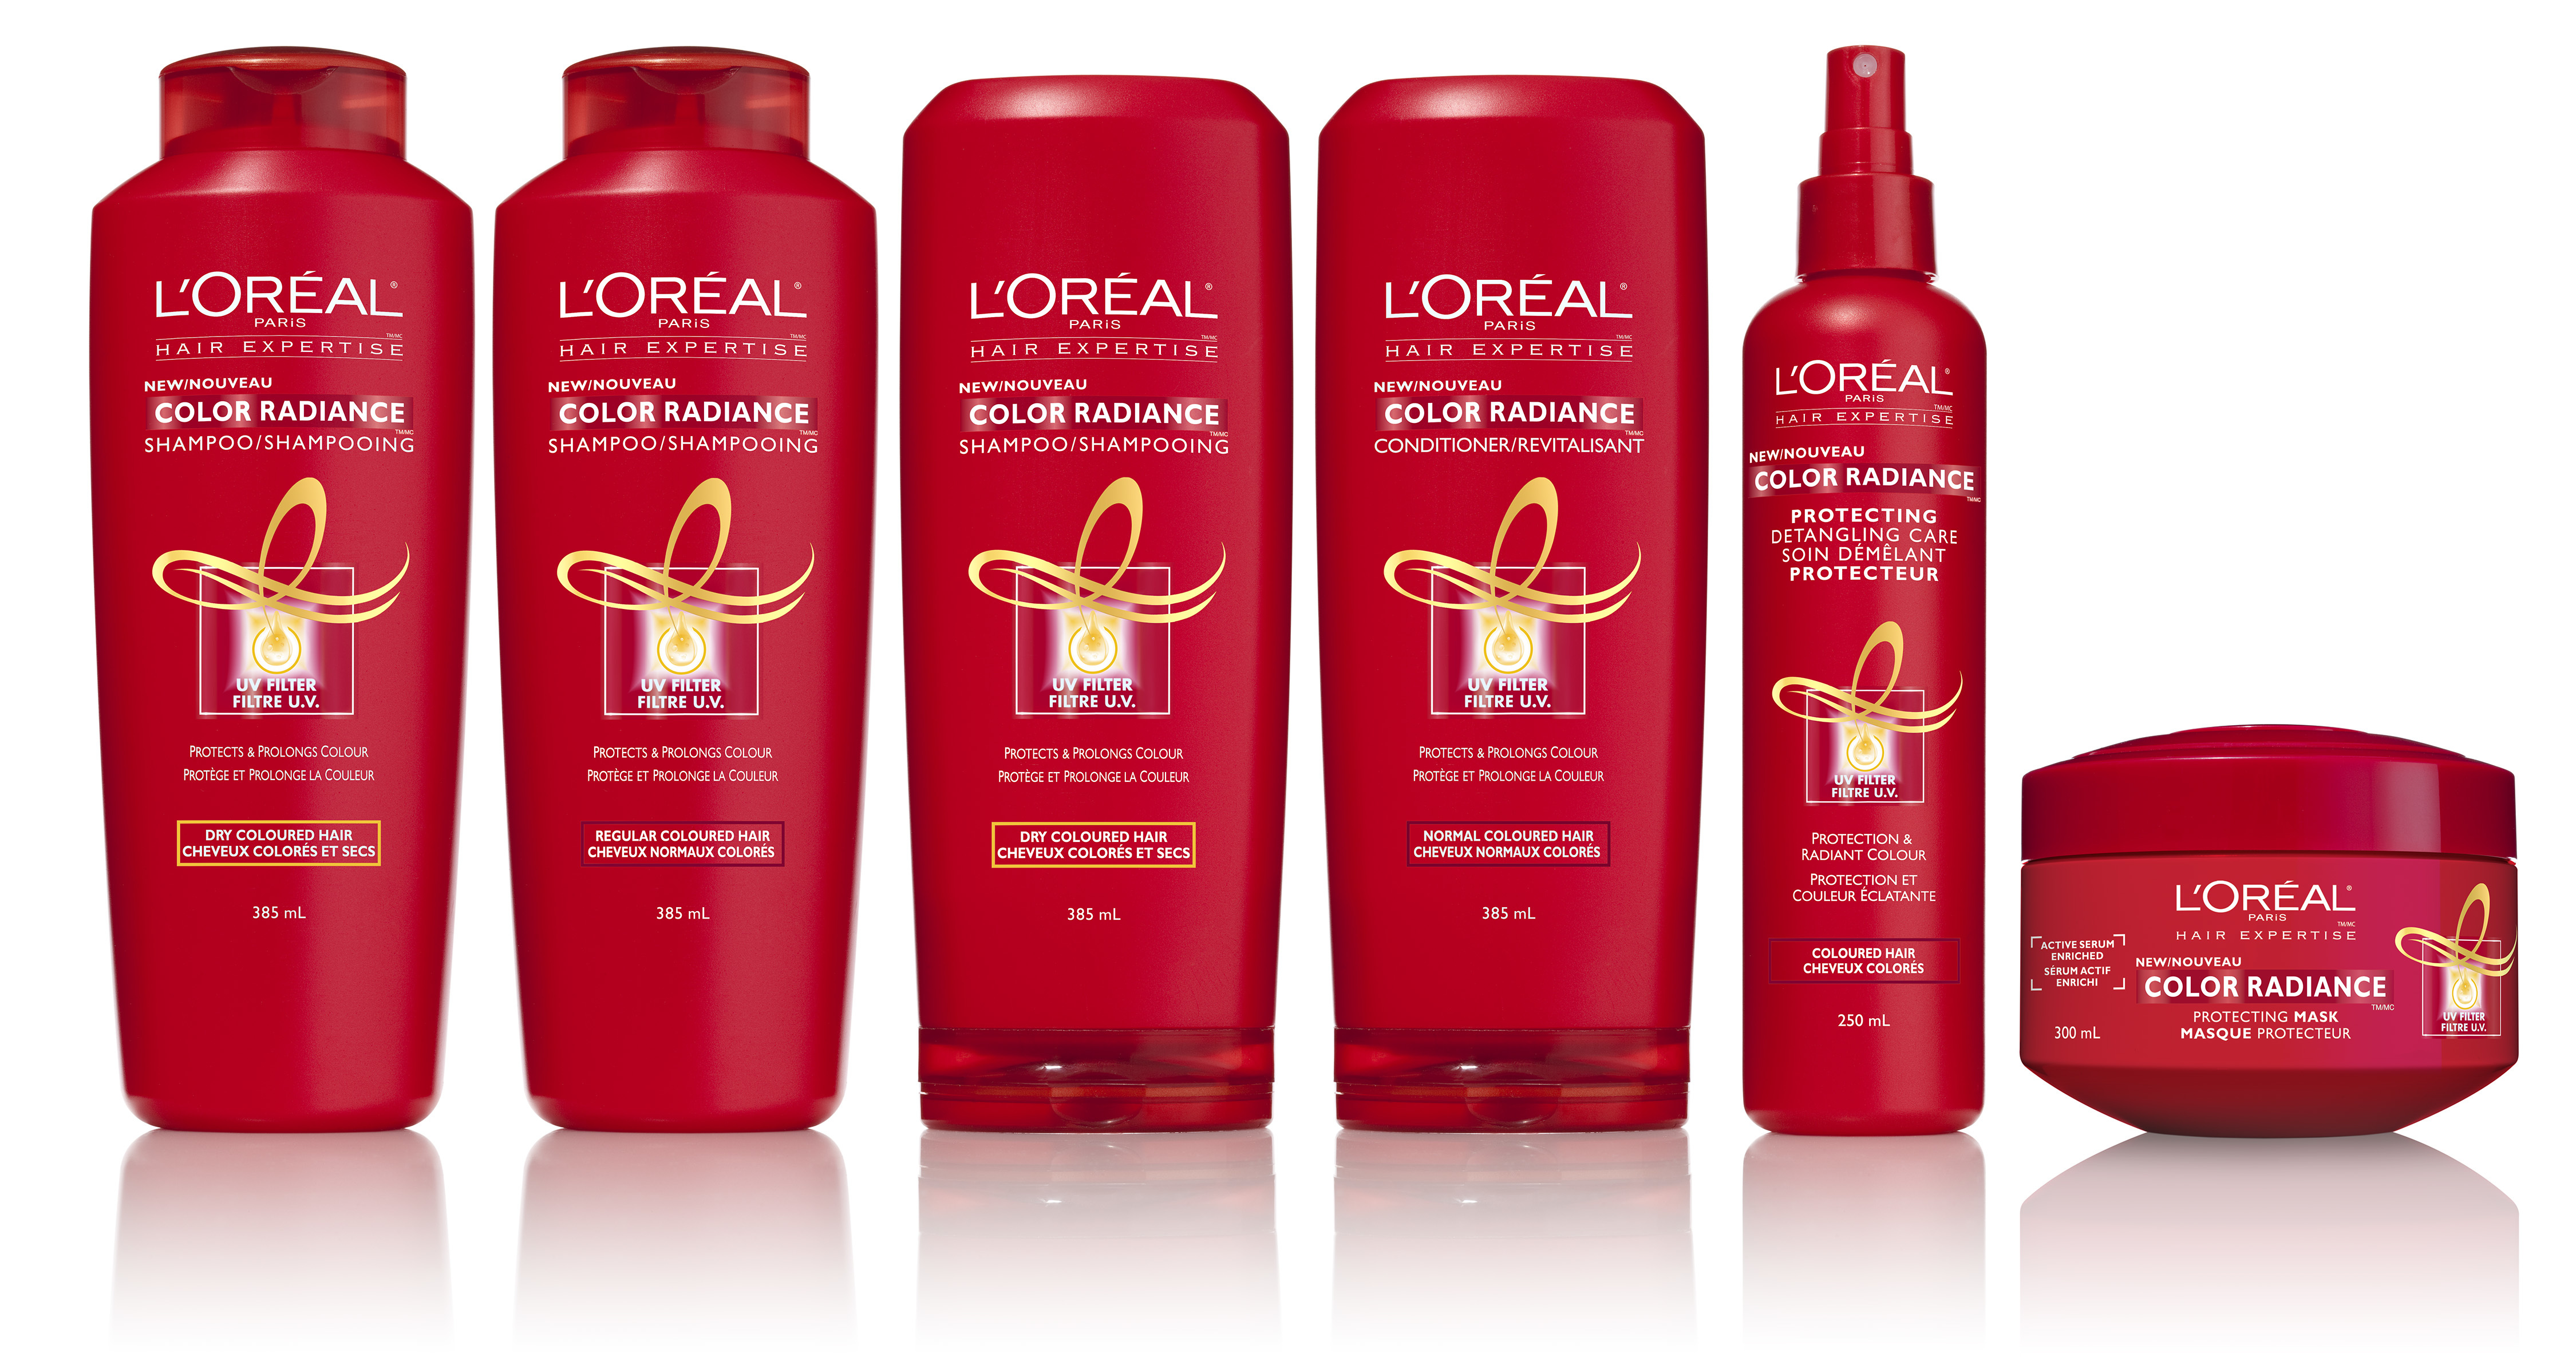 Loreal Hair Expertise Color Radiance Conditioner Reviews In